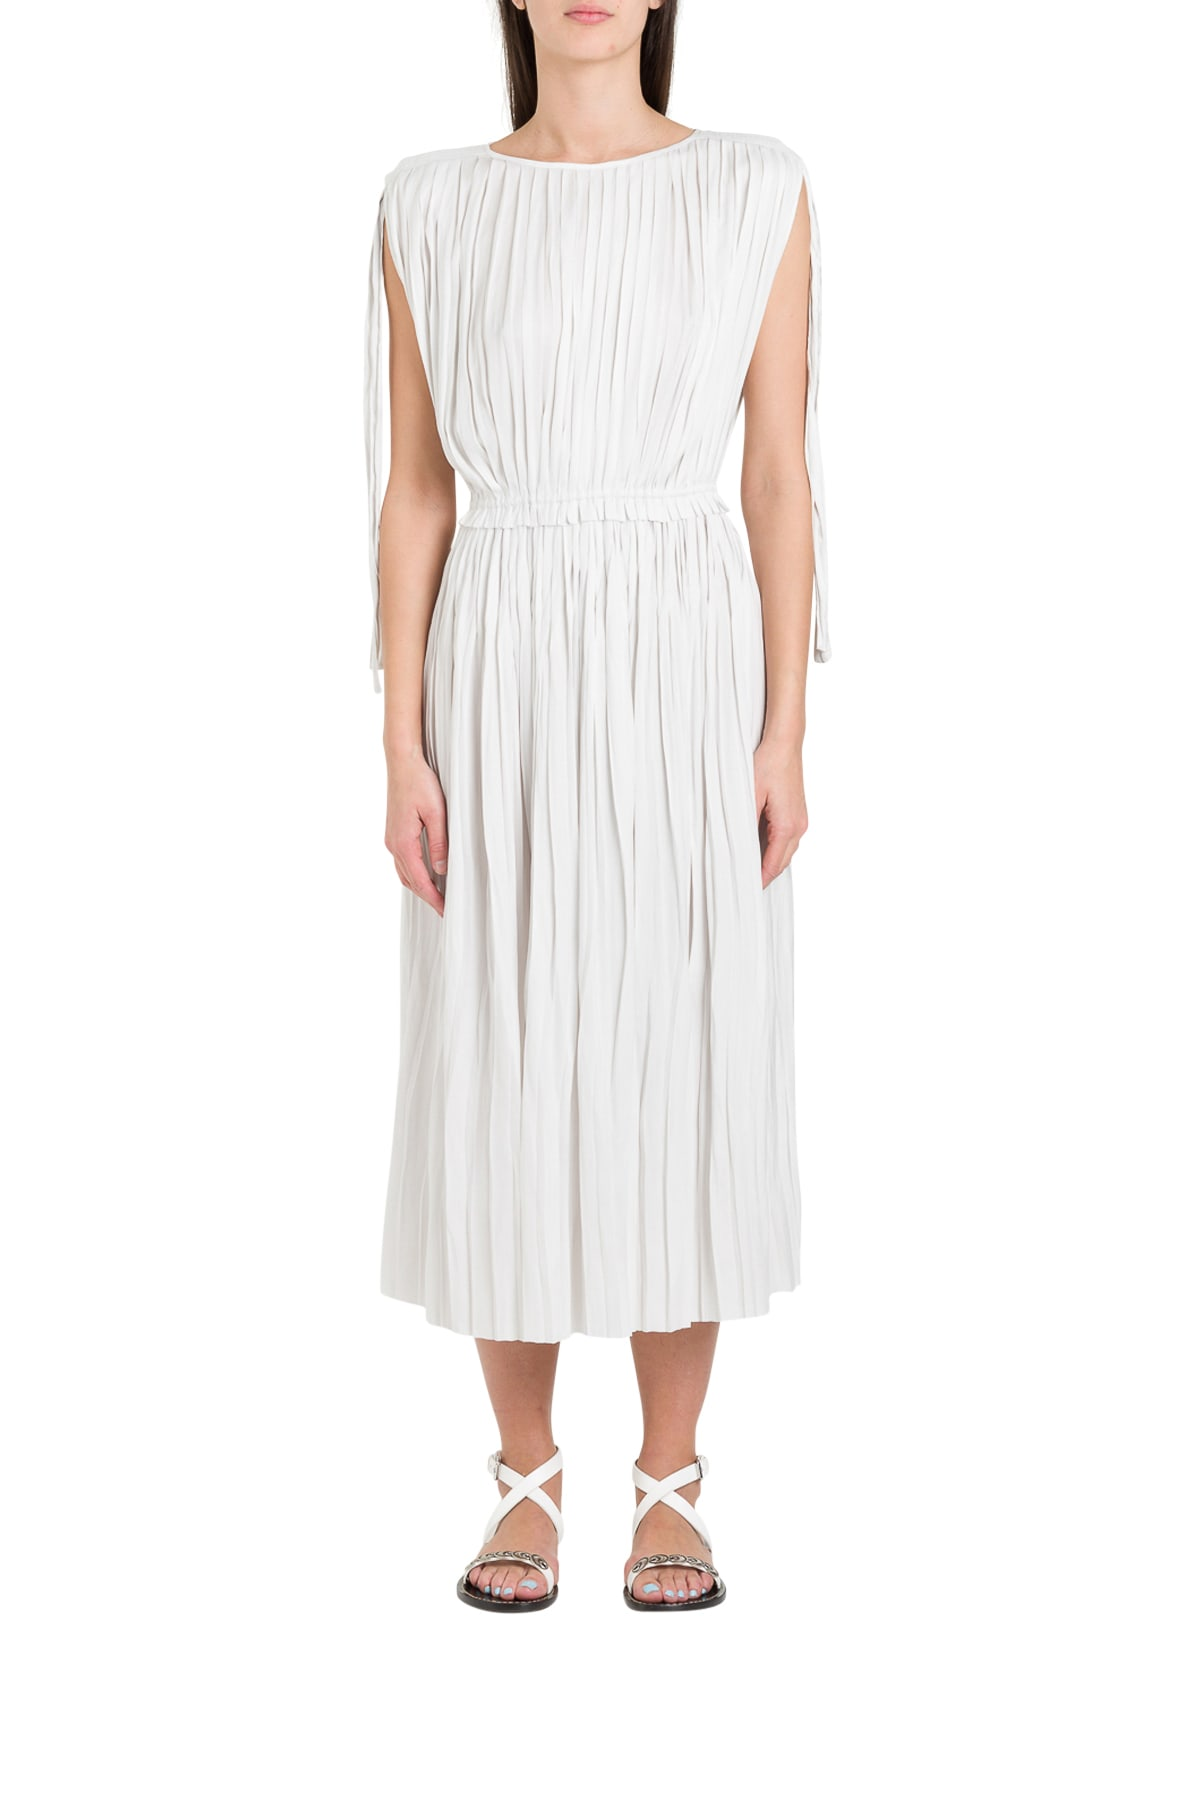 Buy Ulla Johnson Alessa Pleated Dress online, shop Ulla Johnson with free shipping